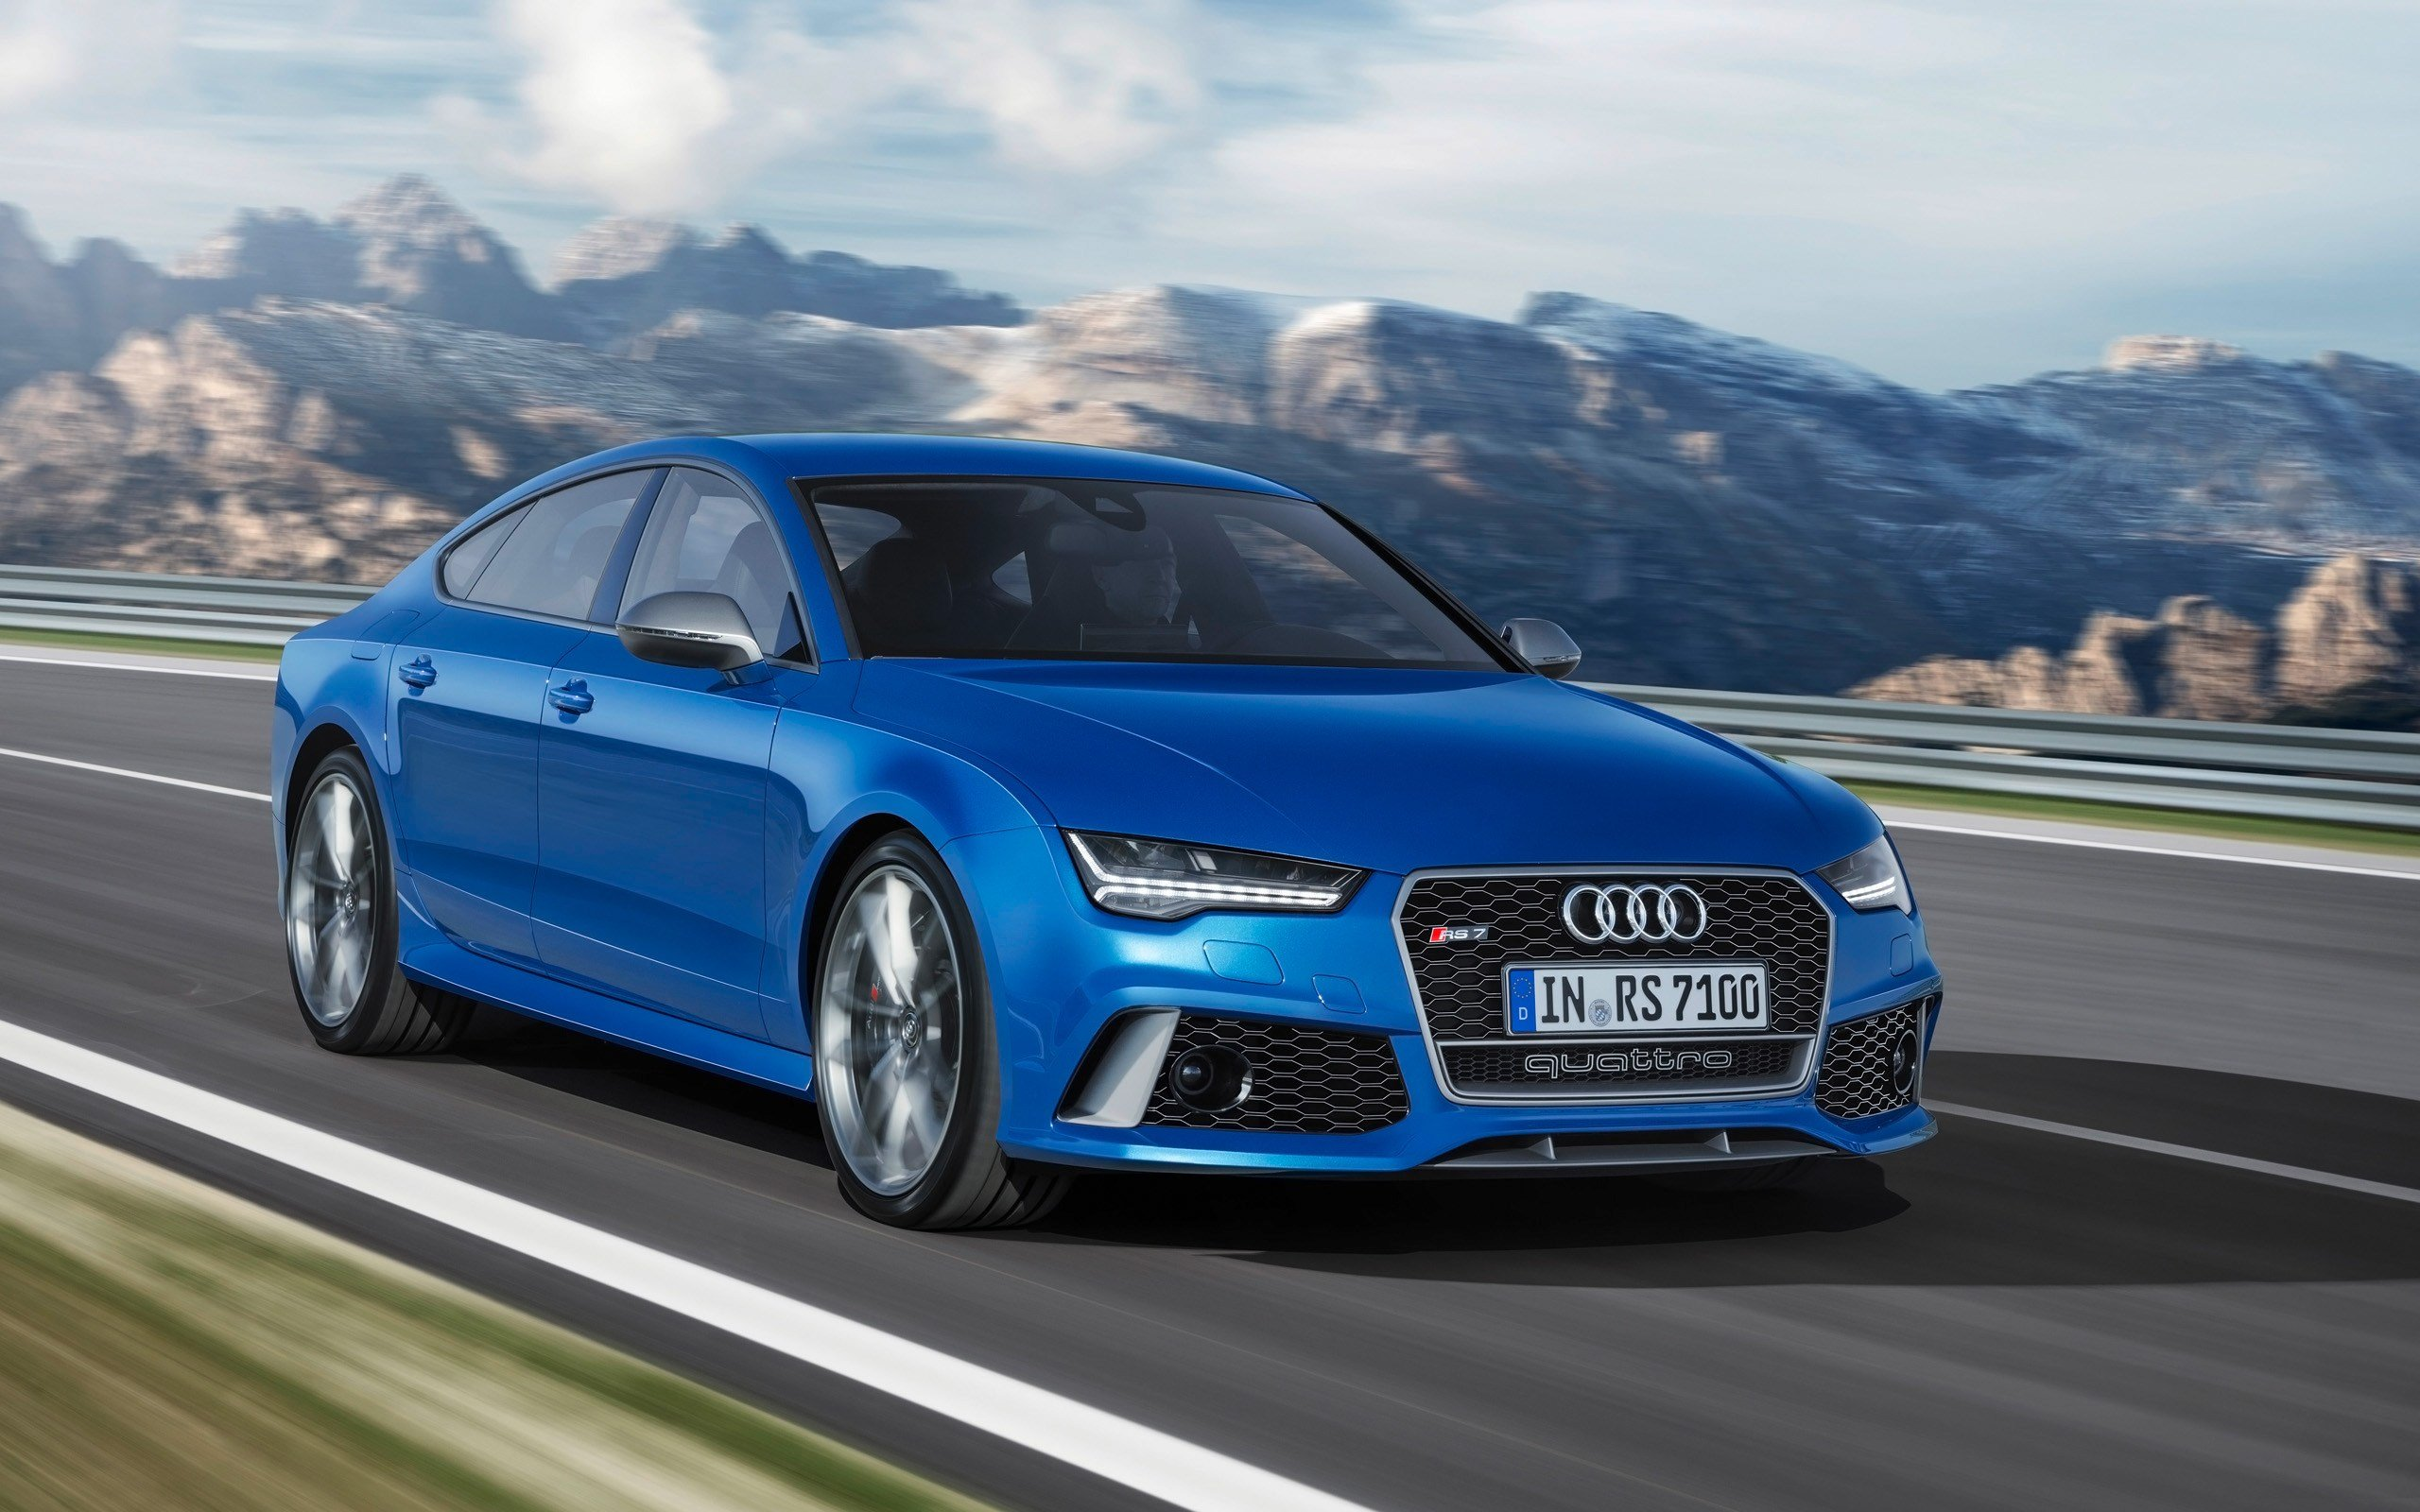 Latest 2016 Audi Rs7 Sportback Performance Wallpaper Hd Car Free Download